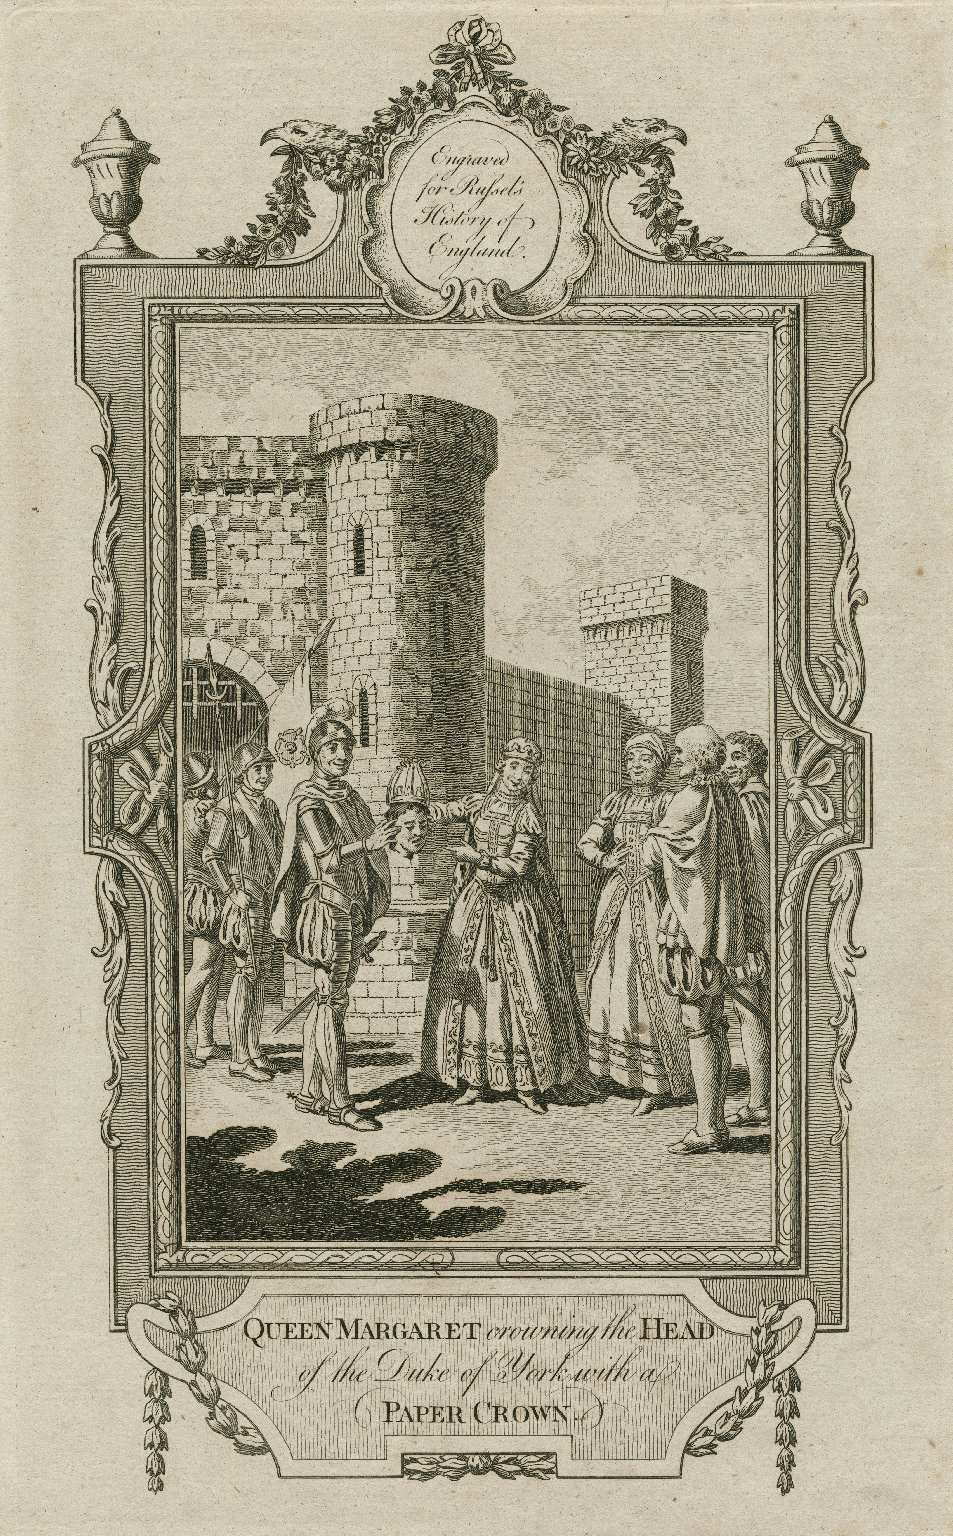 Queen Margaret crowning the head of the Duke of York with a paper crown [graphic].